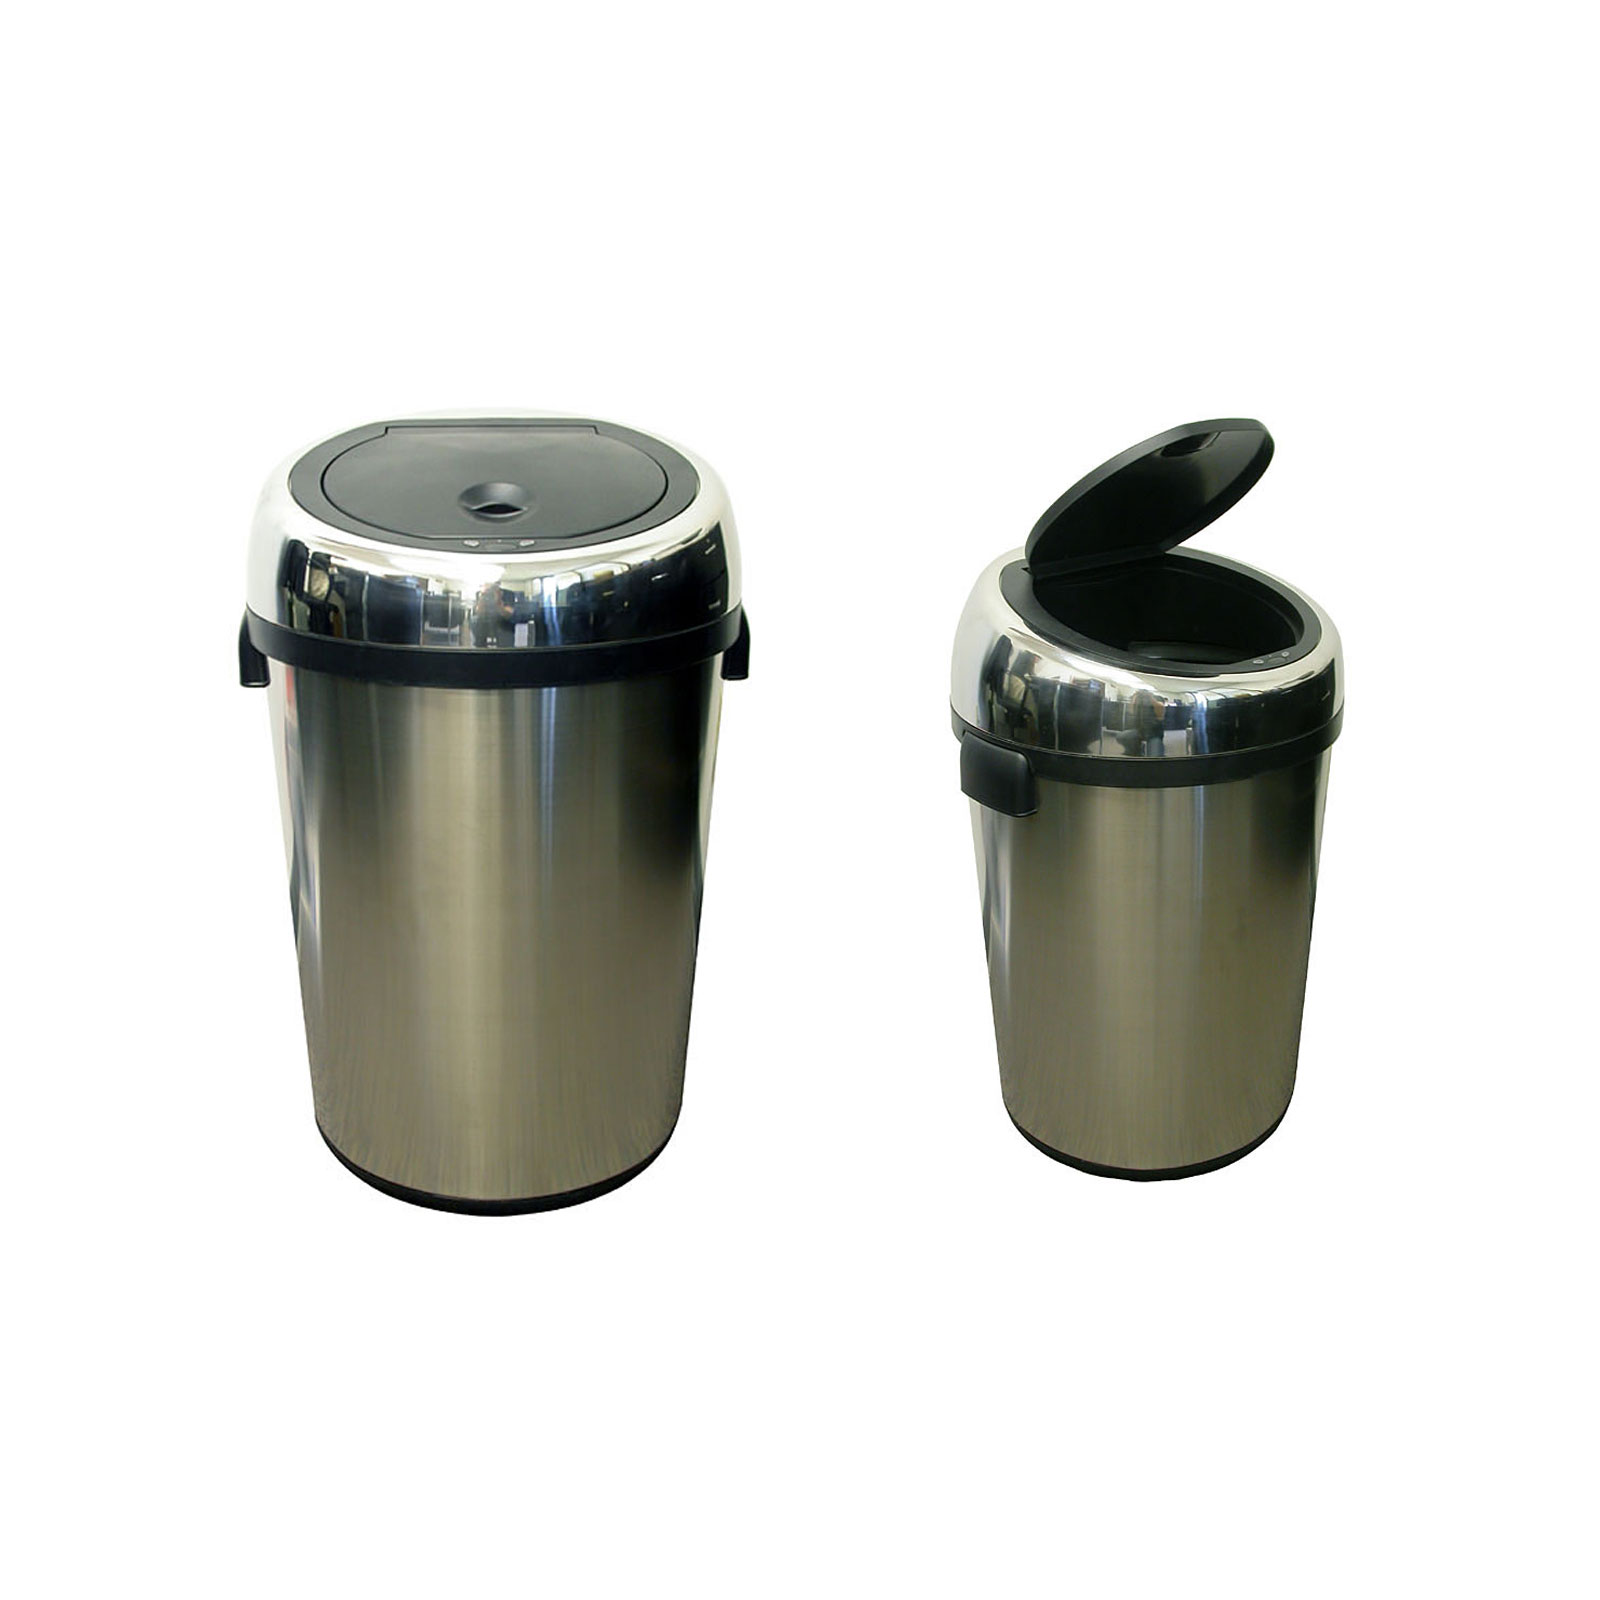 Kitchen stainless steel trash can photo - 2